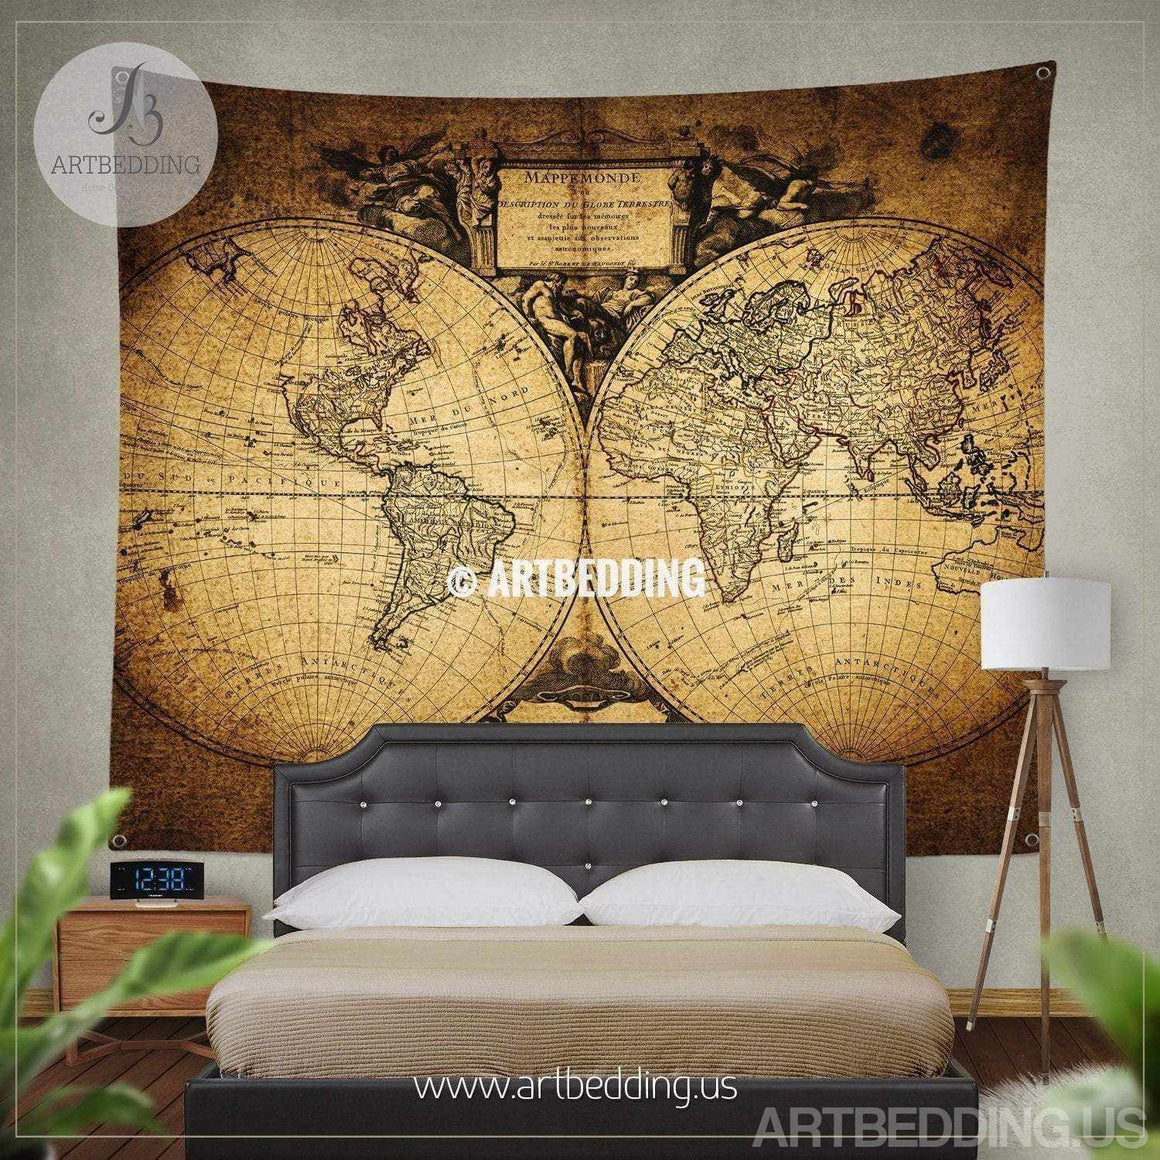 Old world map wall tapestry, Historical world map wall hanging, antique old map wall decor, vintage map wall art print Tapestry